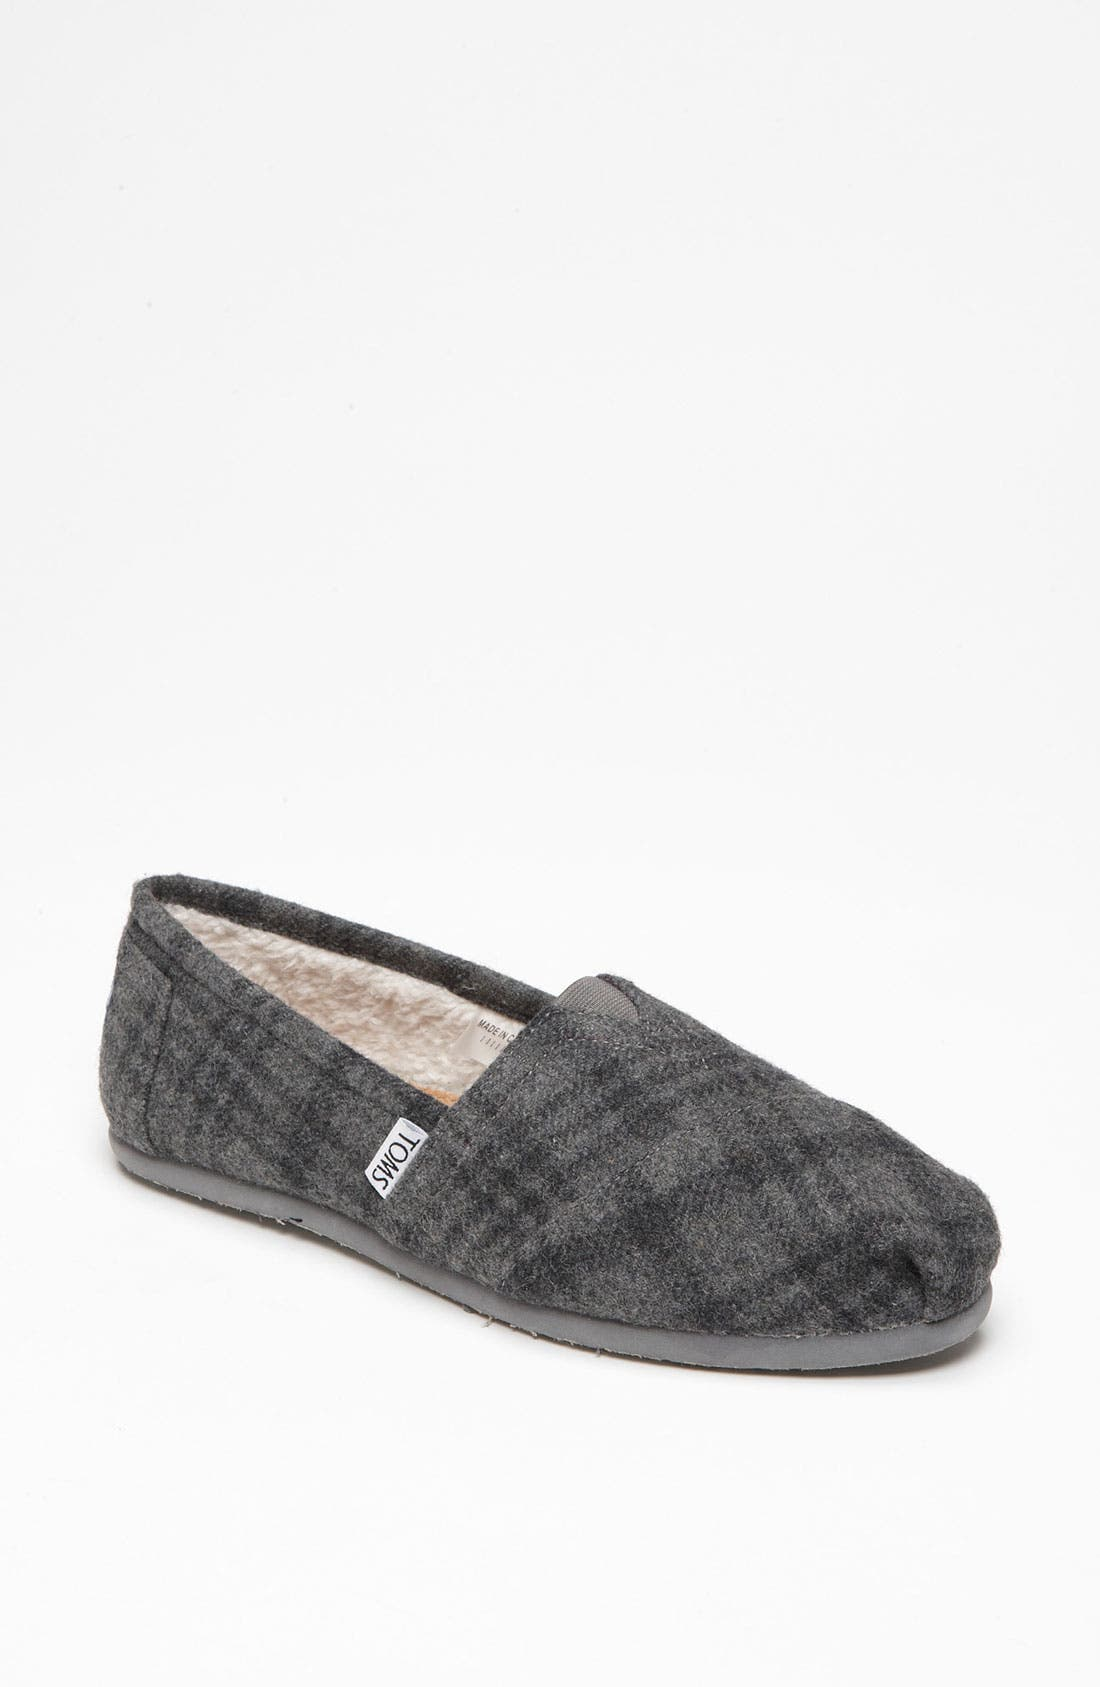 Main Image - TOMS 'Classic - Bray' Slip-On